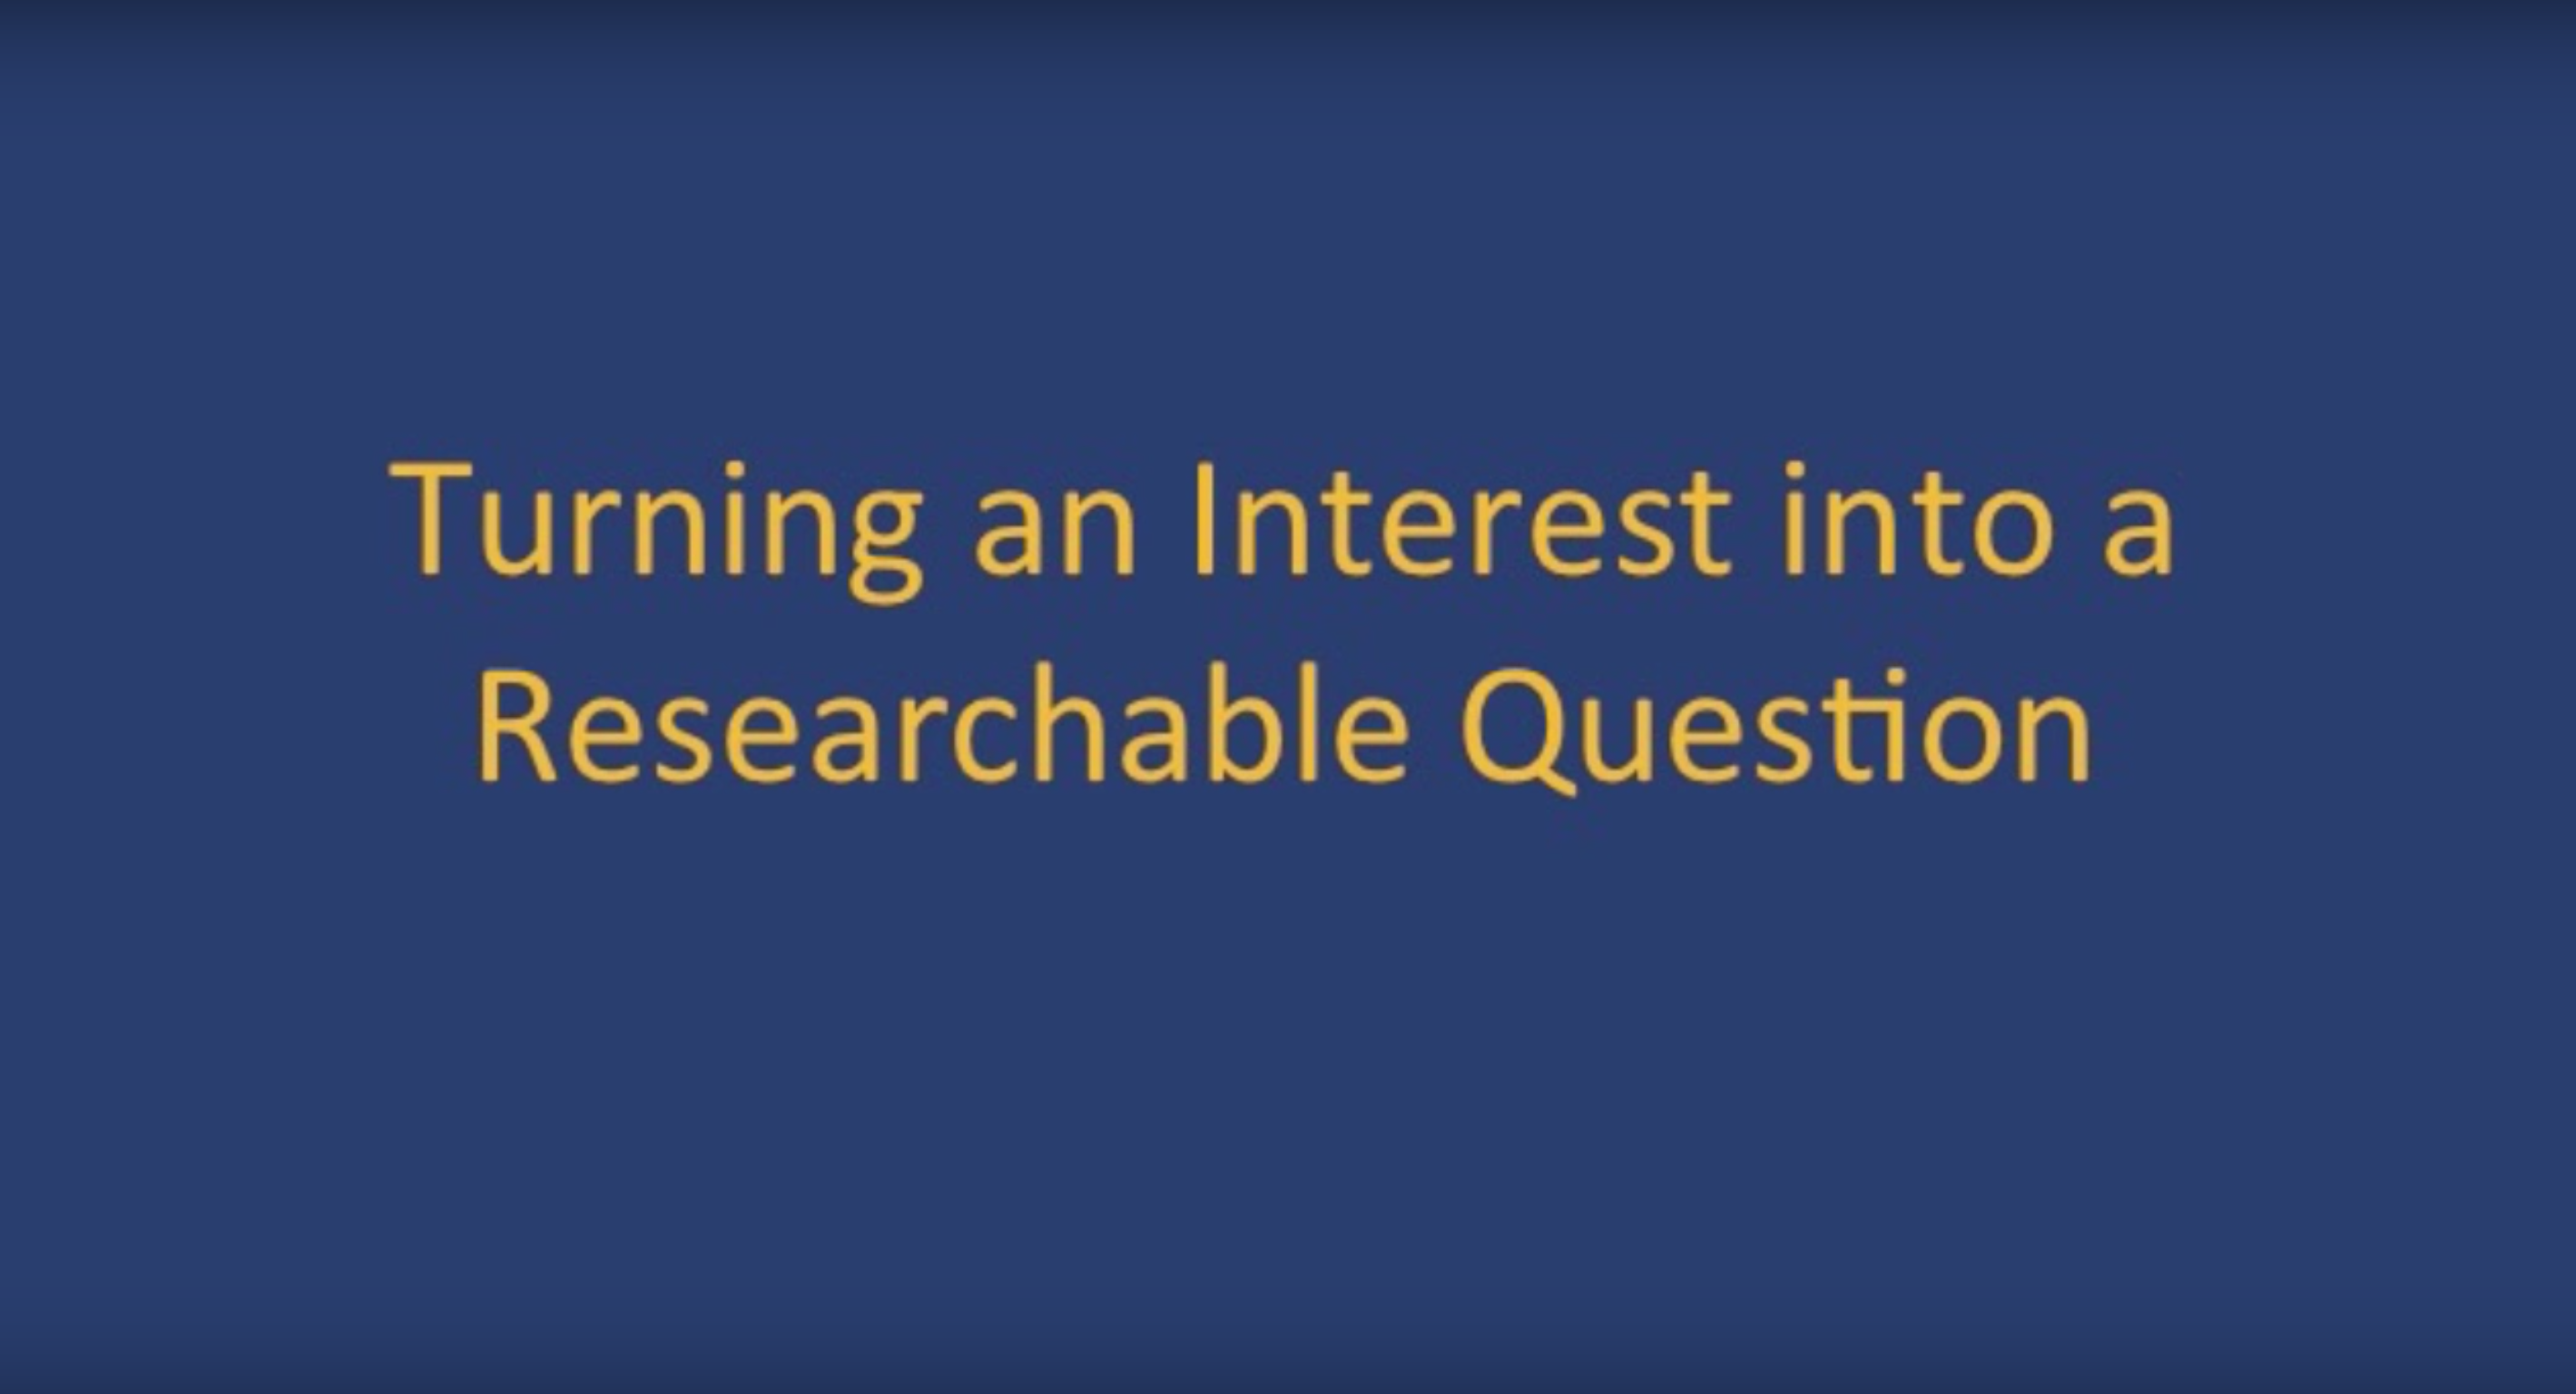 Turning an Interest into a Researchable Question